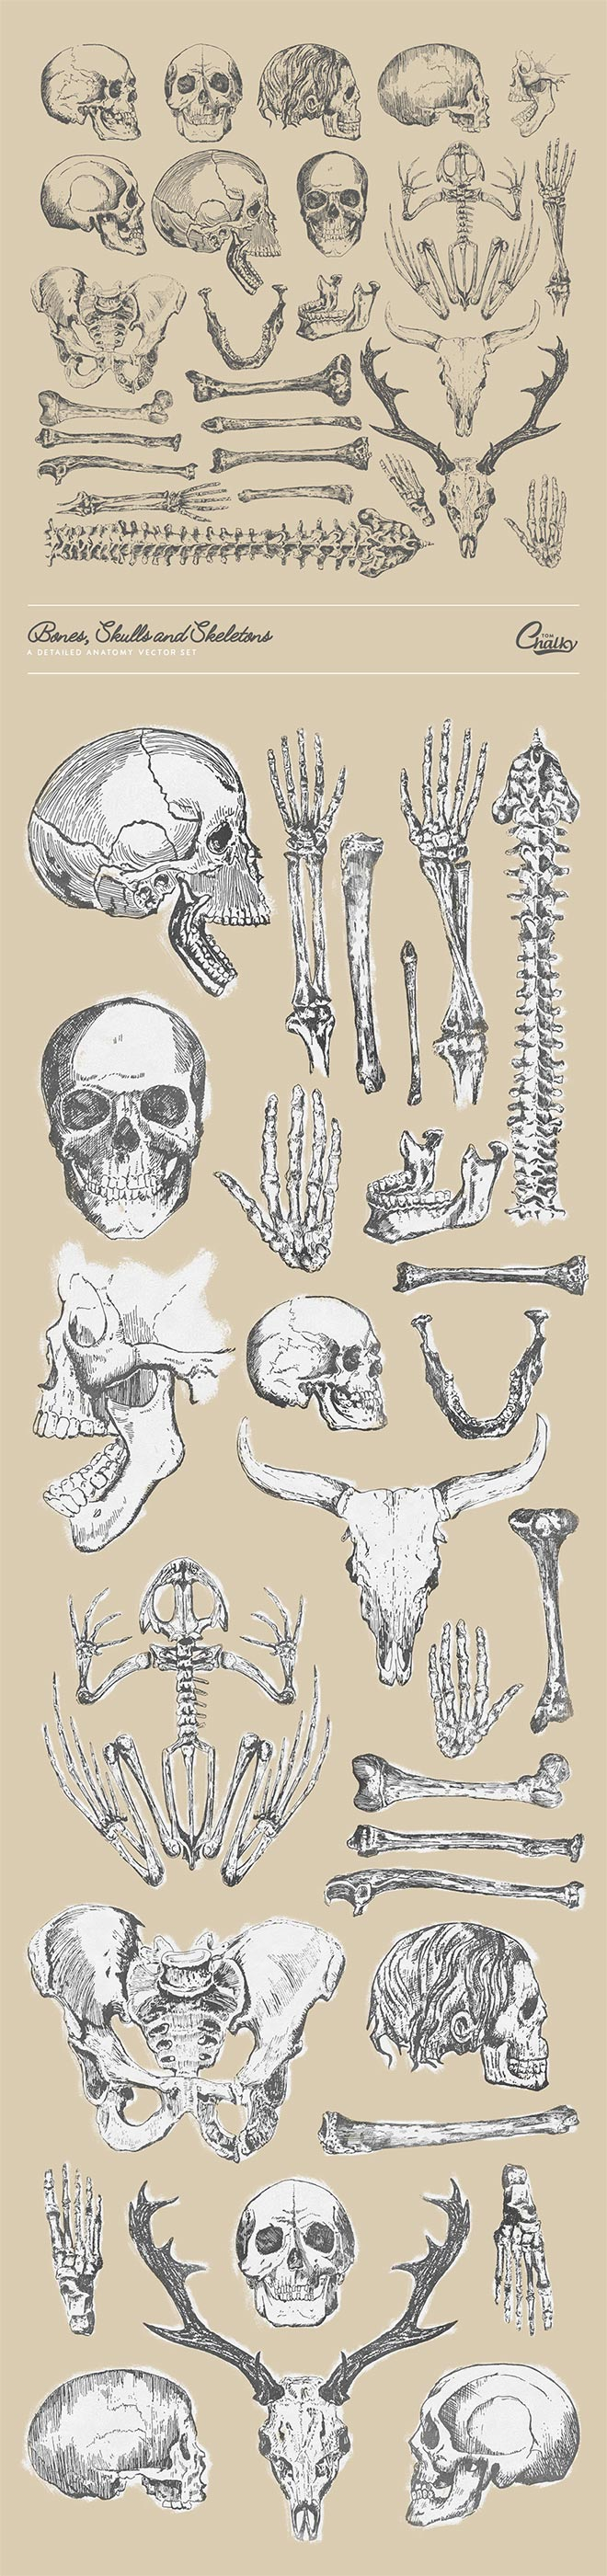 The Bones, Skulls and Skeletons Vector Pack